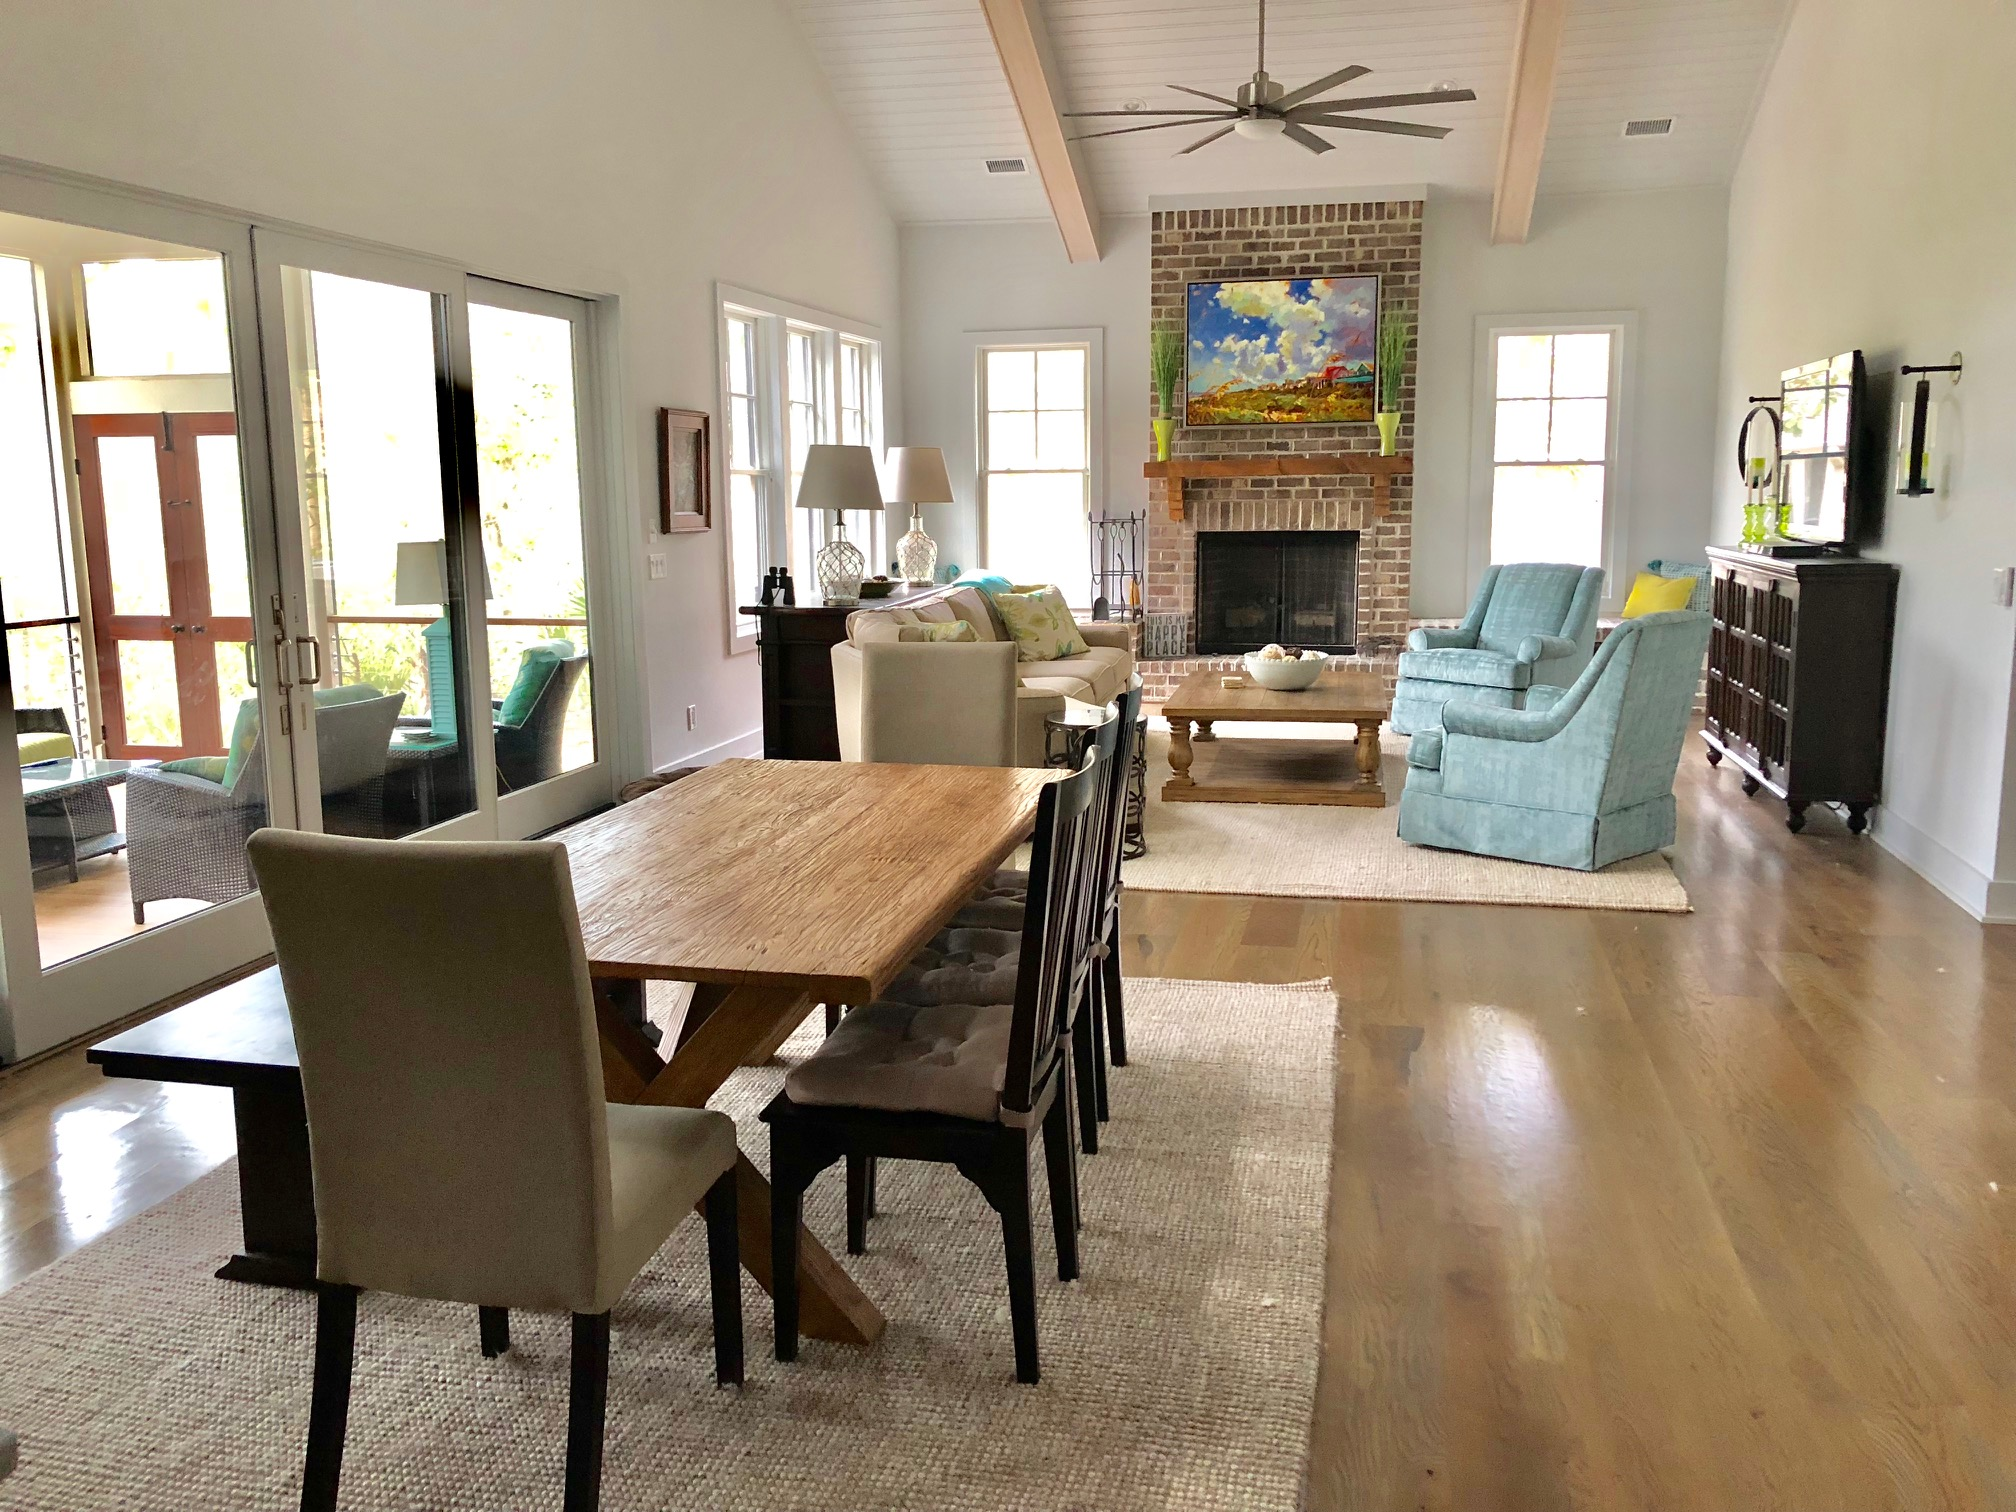 The dining room is anchored by the great room and kitchen, making it the perfect gathering spot.